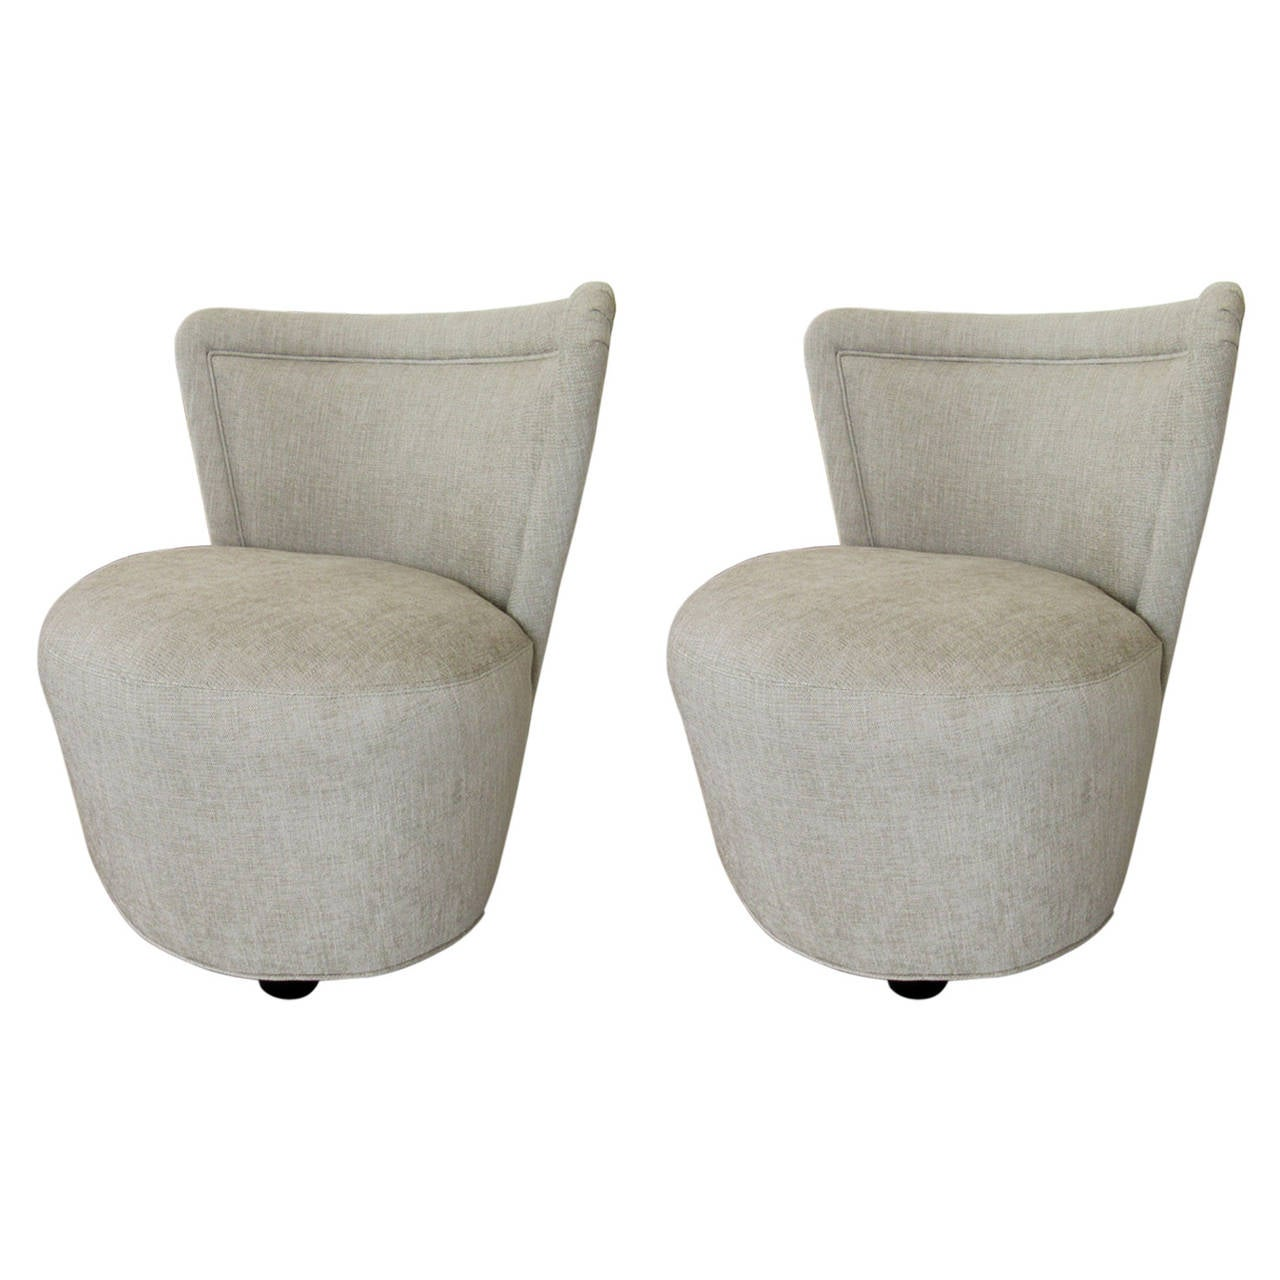 sofas and stuff alton doll patchwork sofa dfs pair of morris lapidus upholstered chairs at 1stdibs